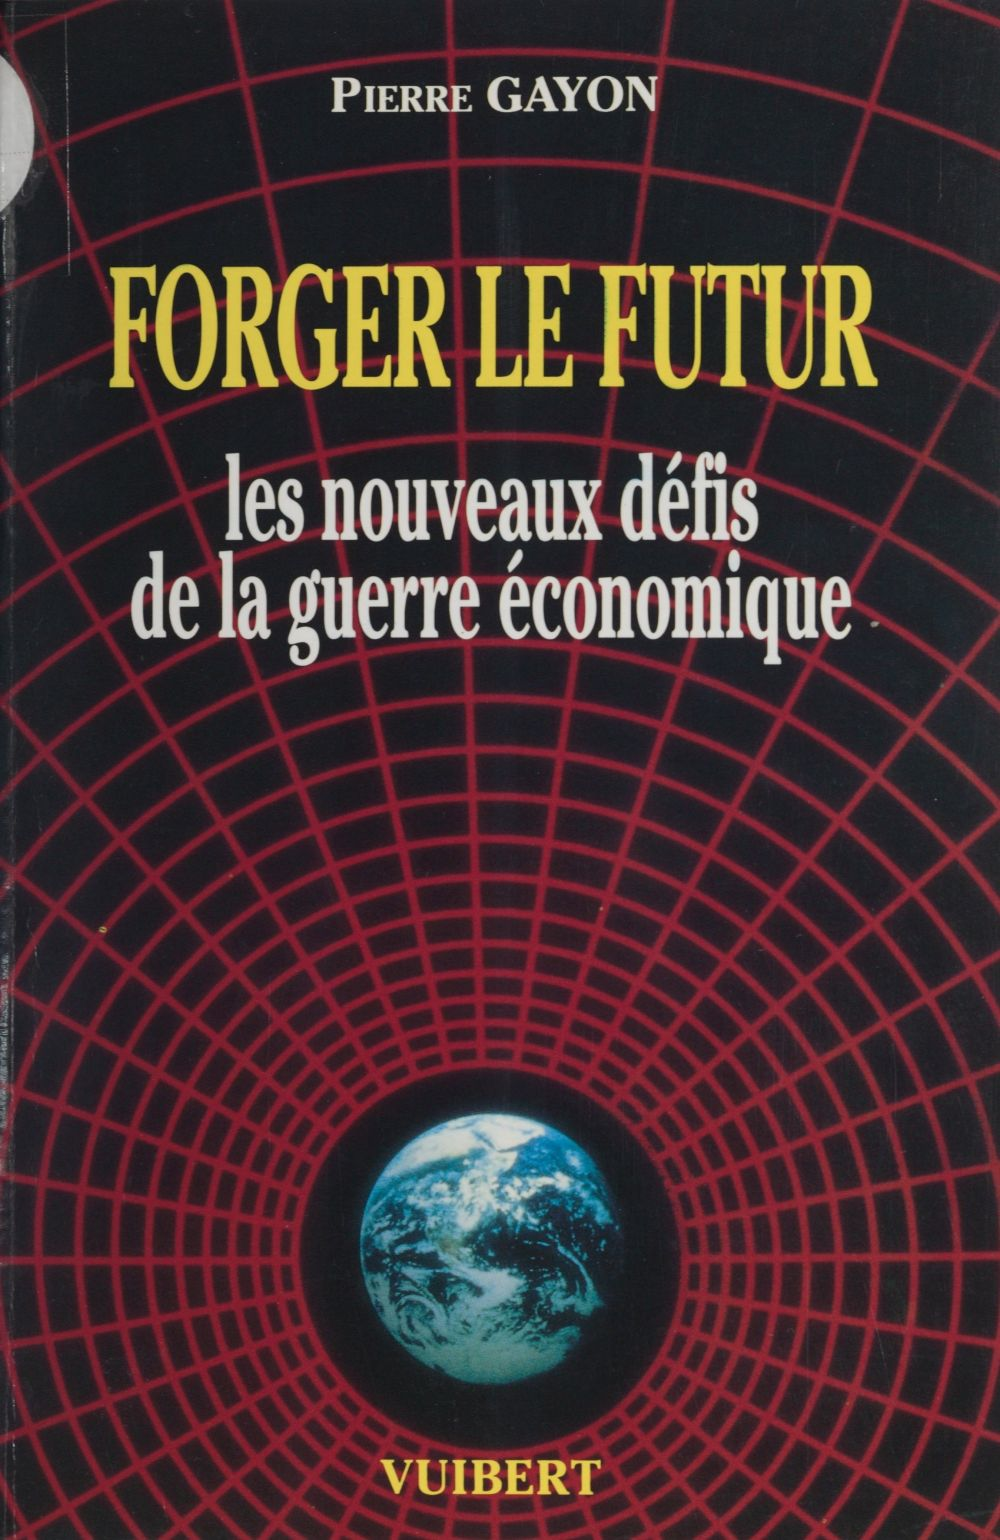 Forger le futur